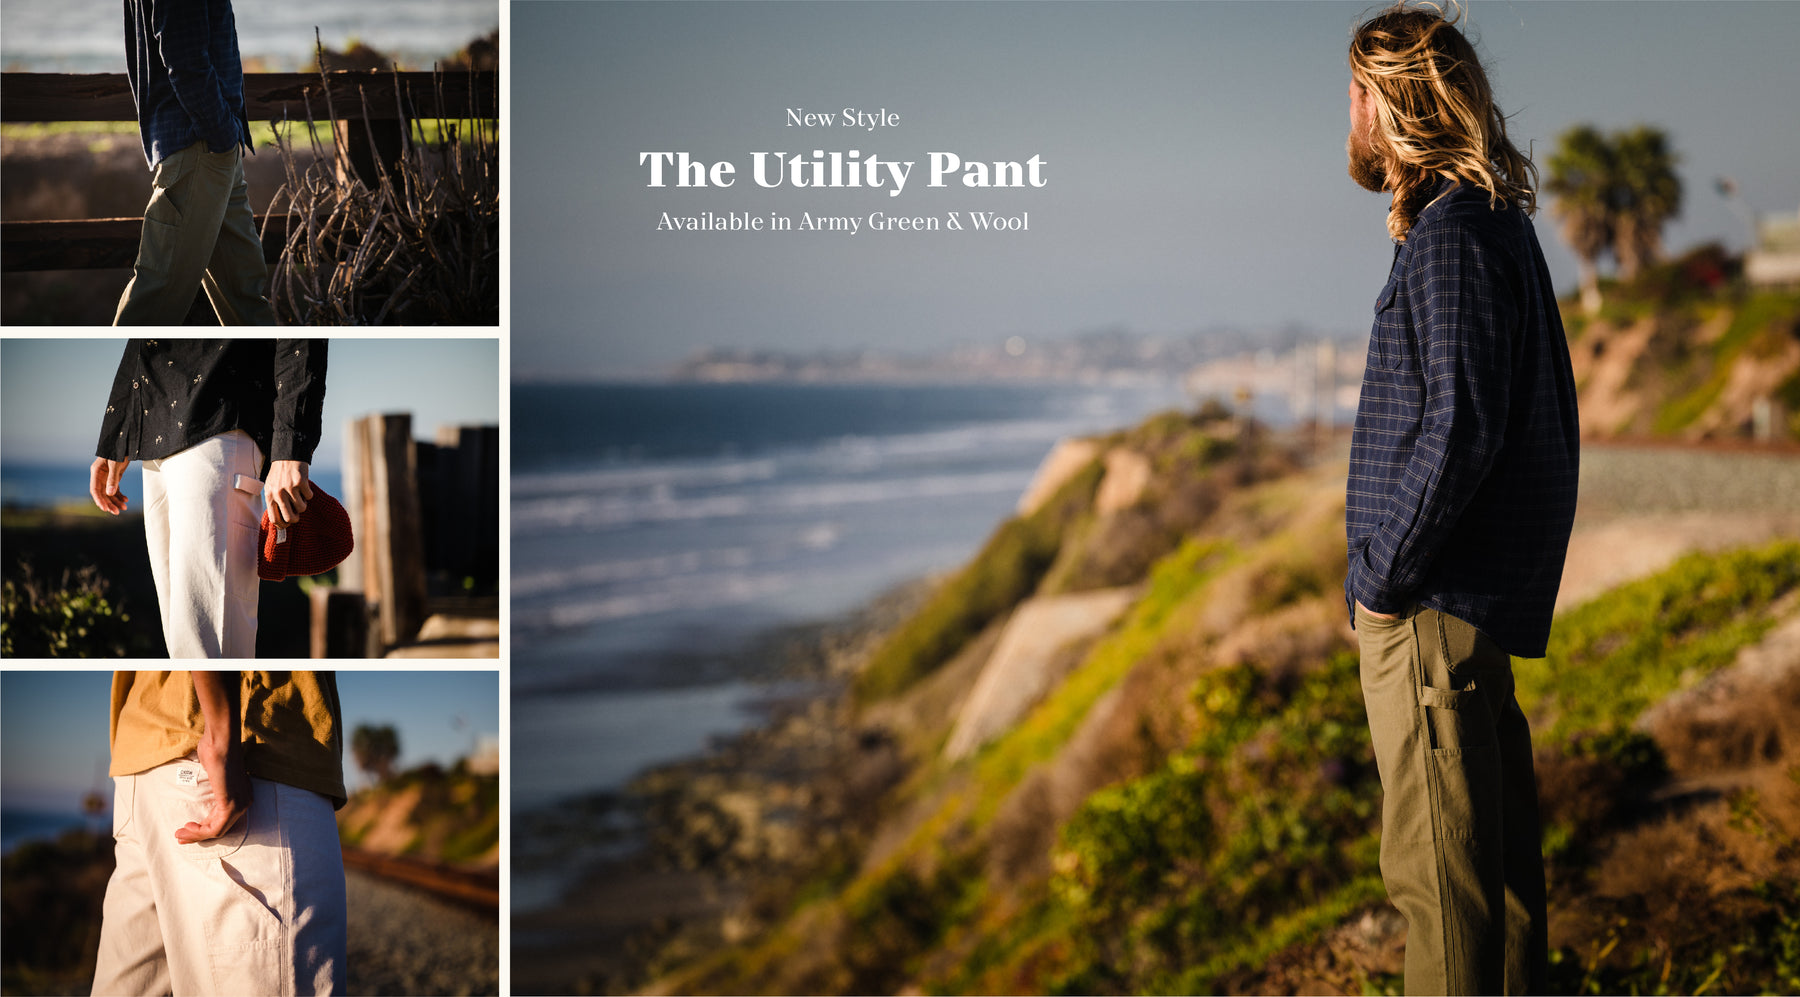 Surf Apparel – Trunks, Shorts, Shirts, Hats | Katin USA